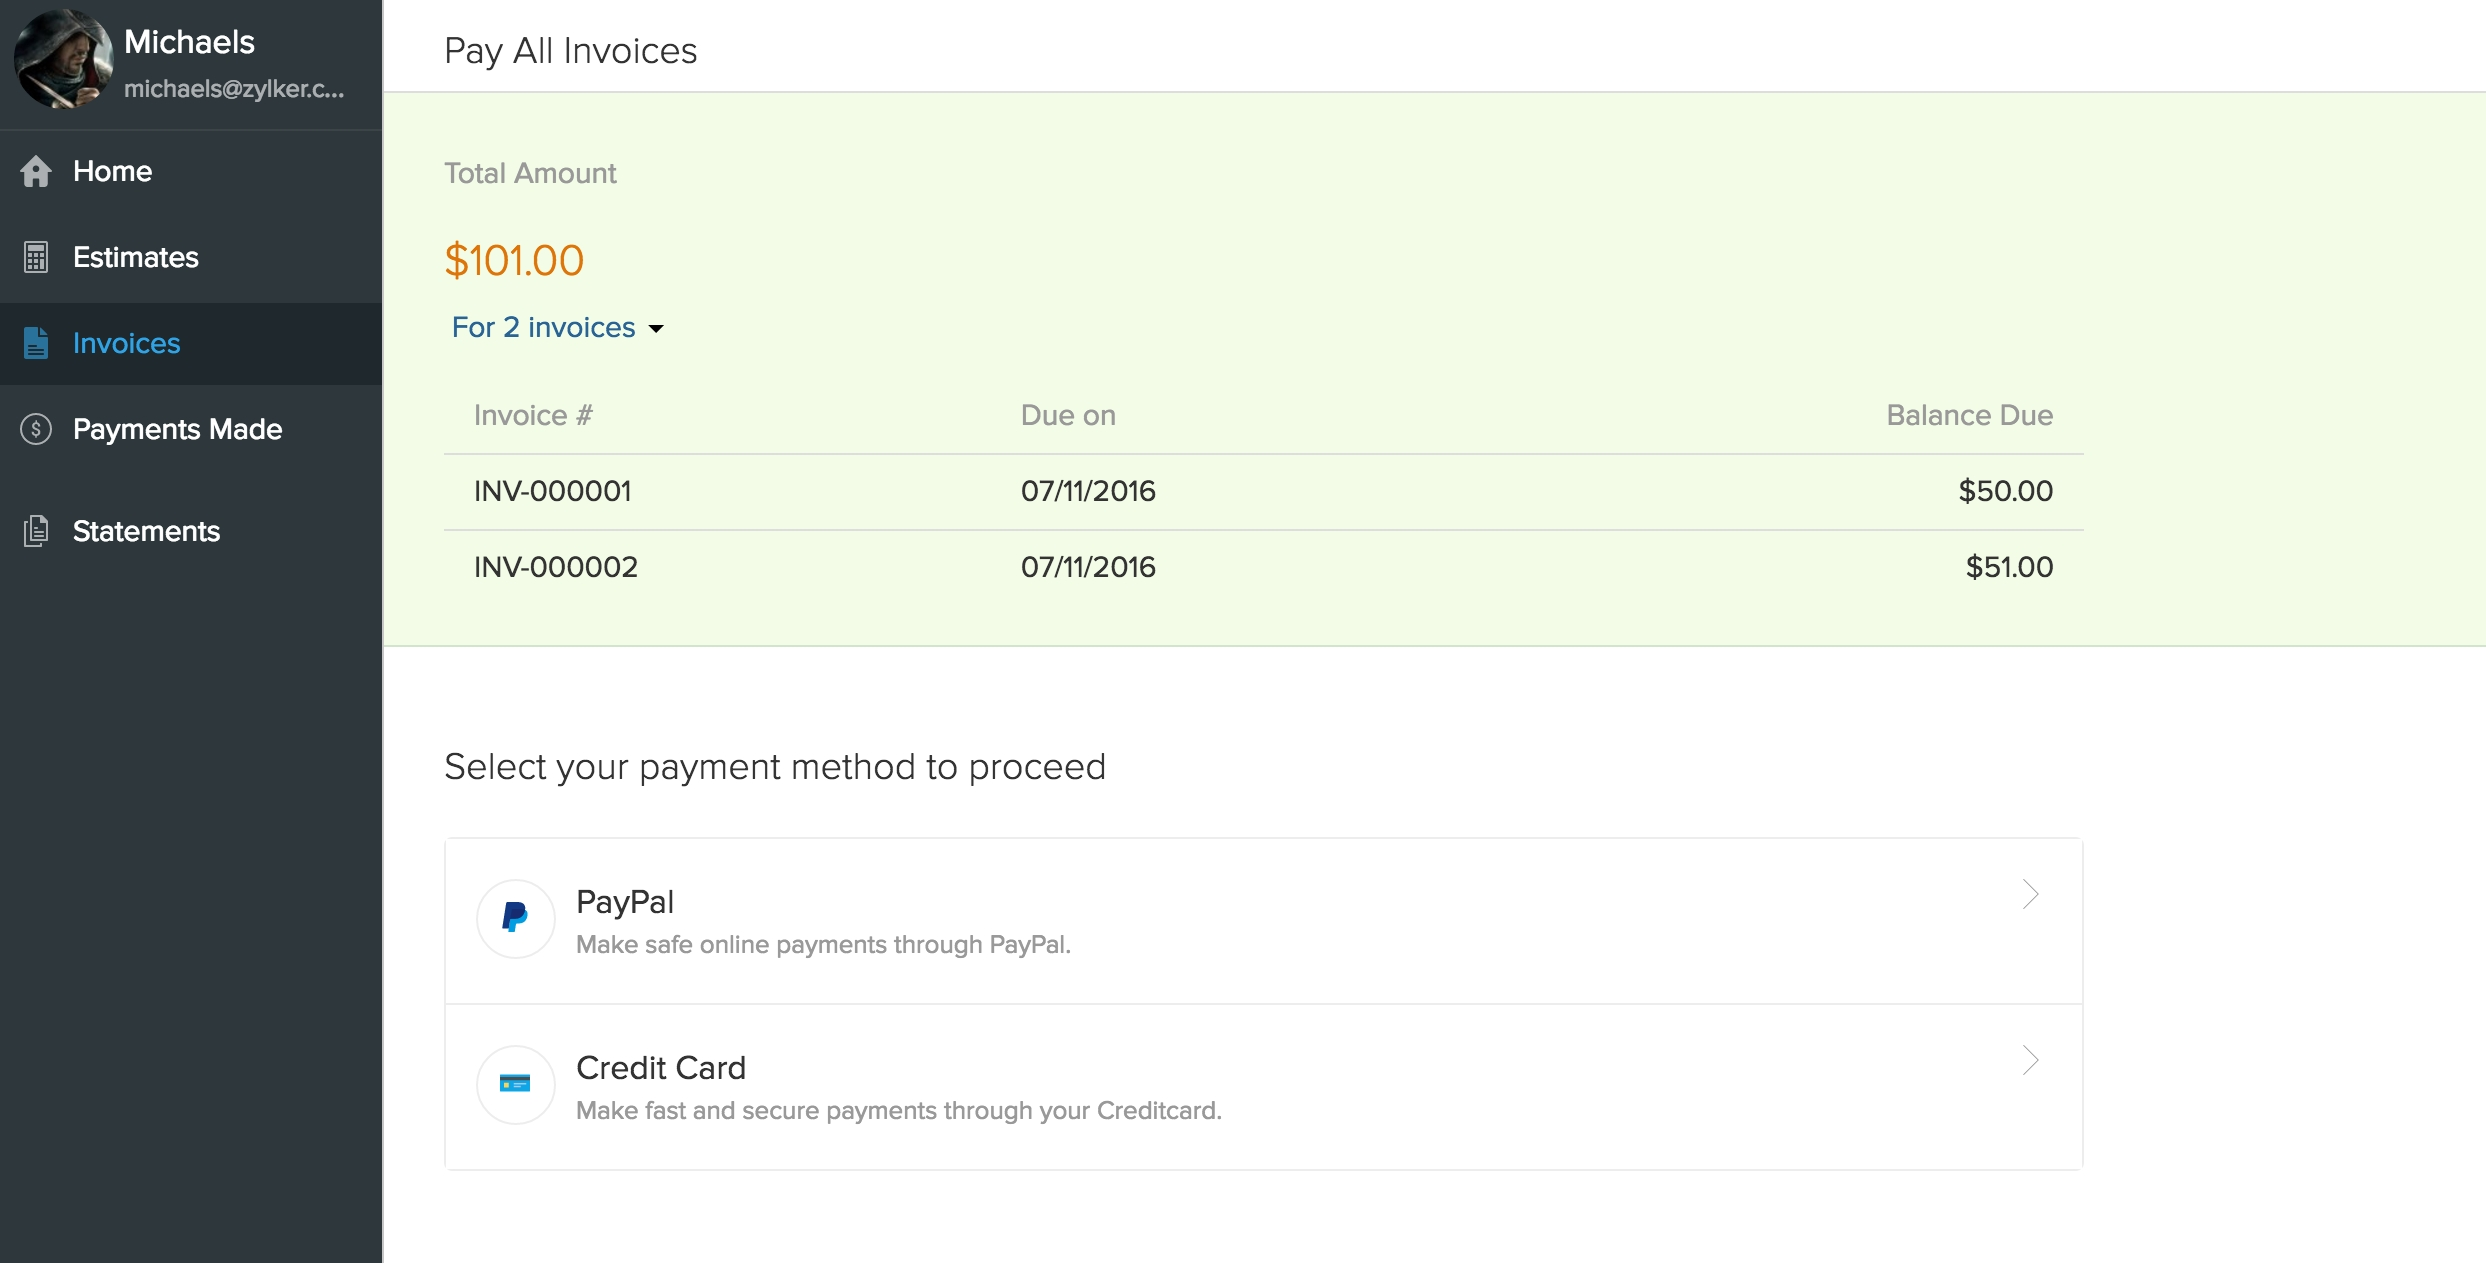 invoice payment details client portal user guide zoho books 2486 X 1263